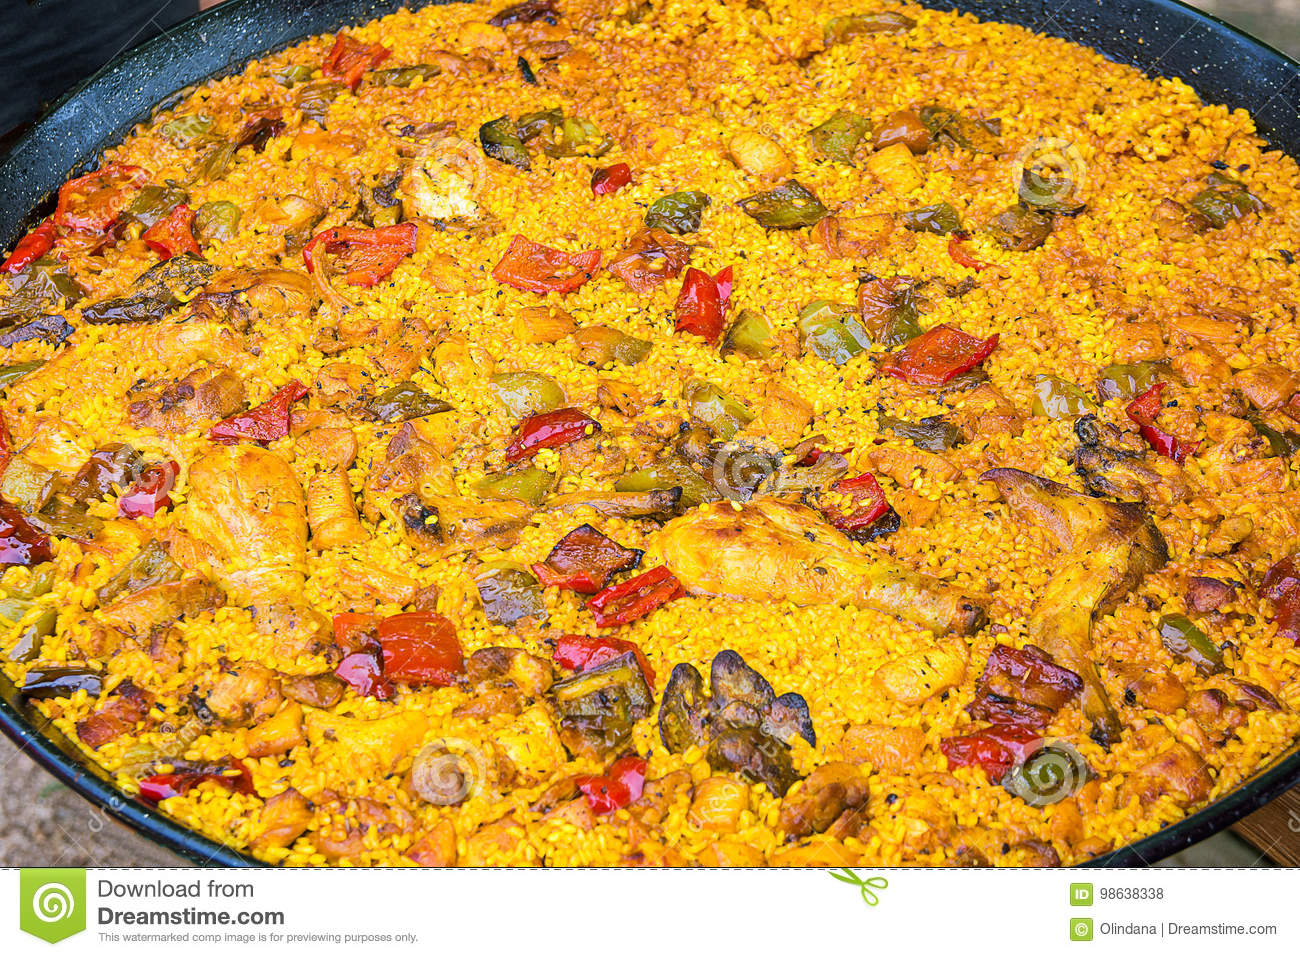 Big flat frying pan with home cooked Spanish paella. Variety of meat chicken, rabbit, vegetables, rice, tomato sauce, spices